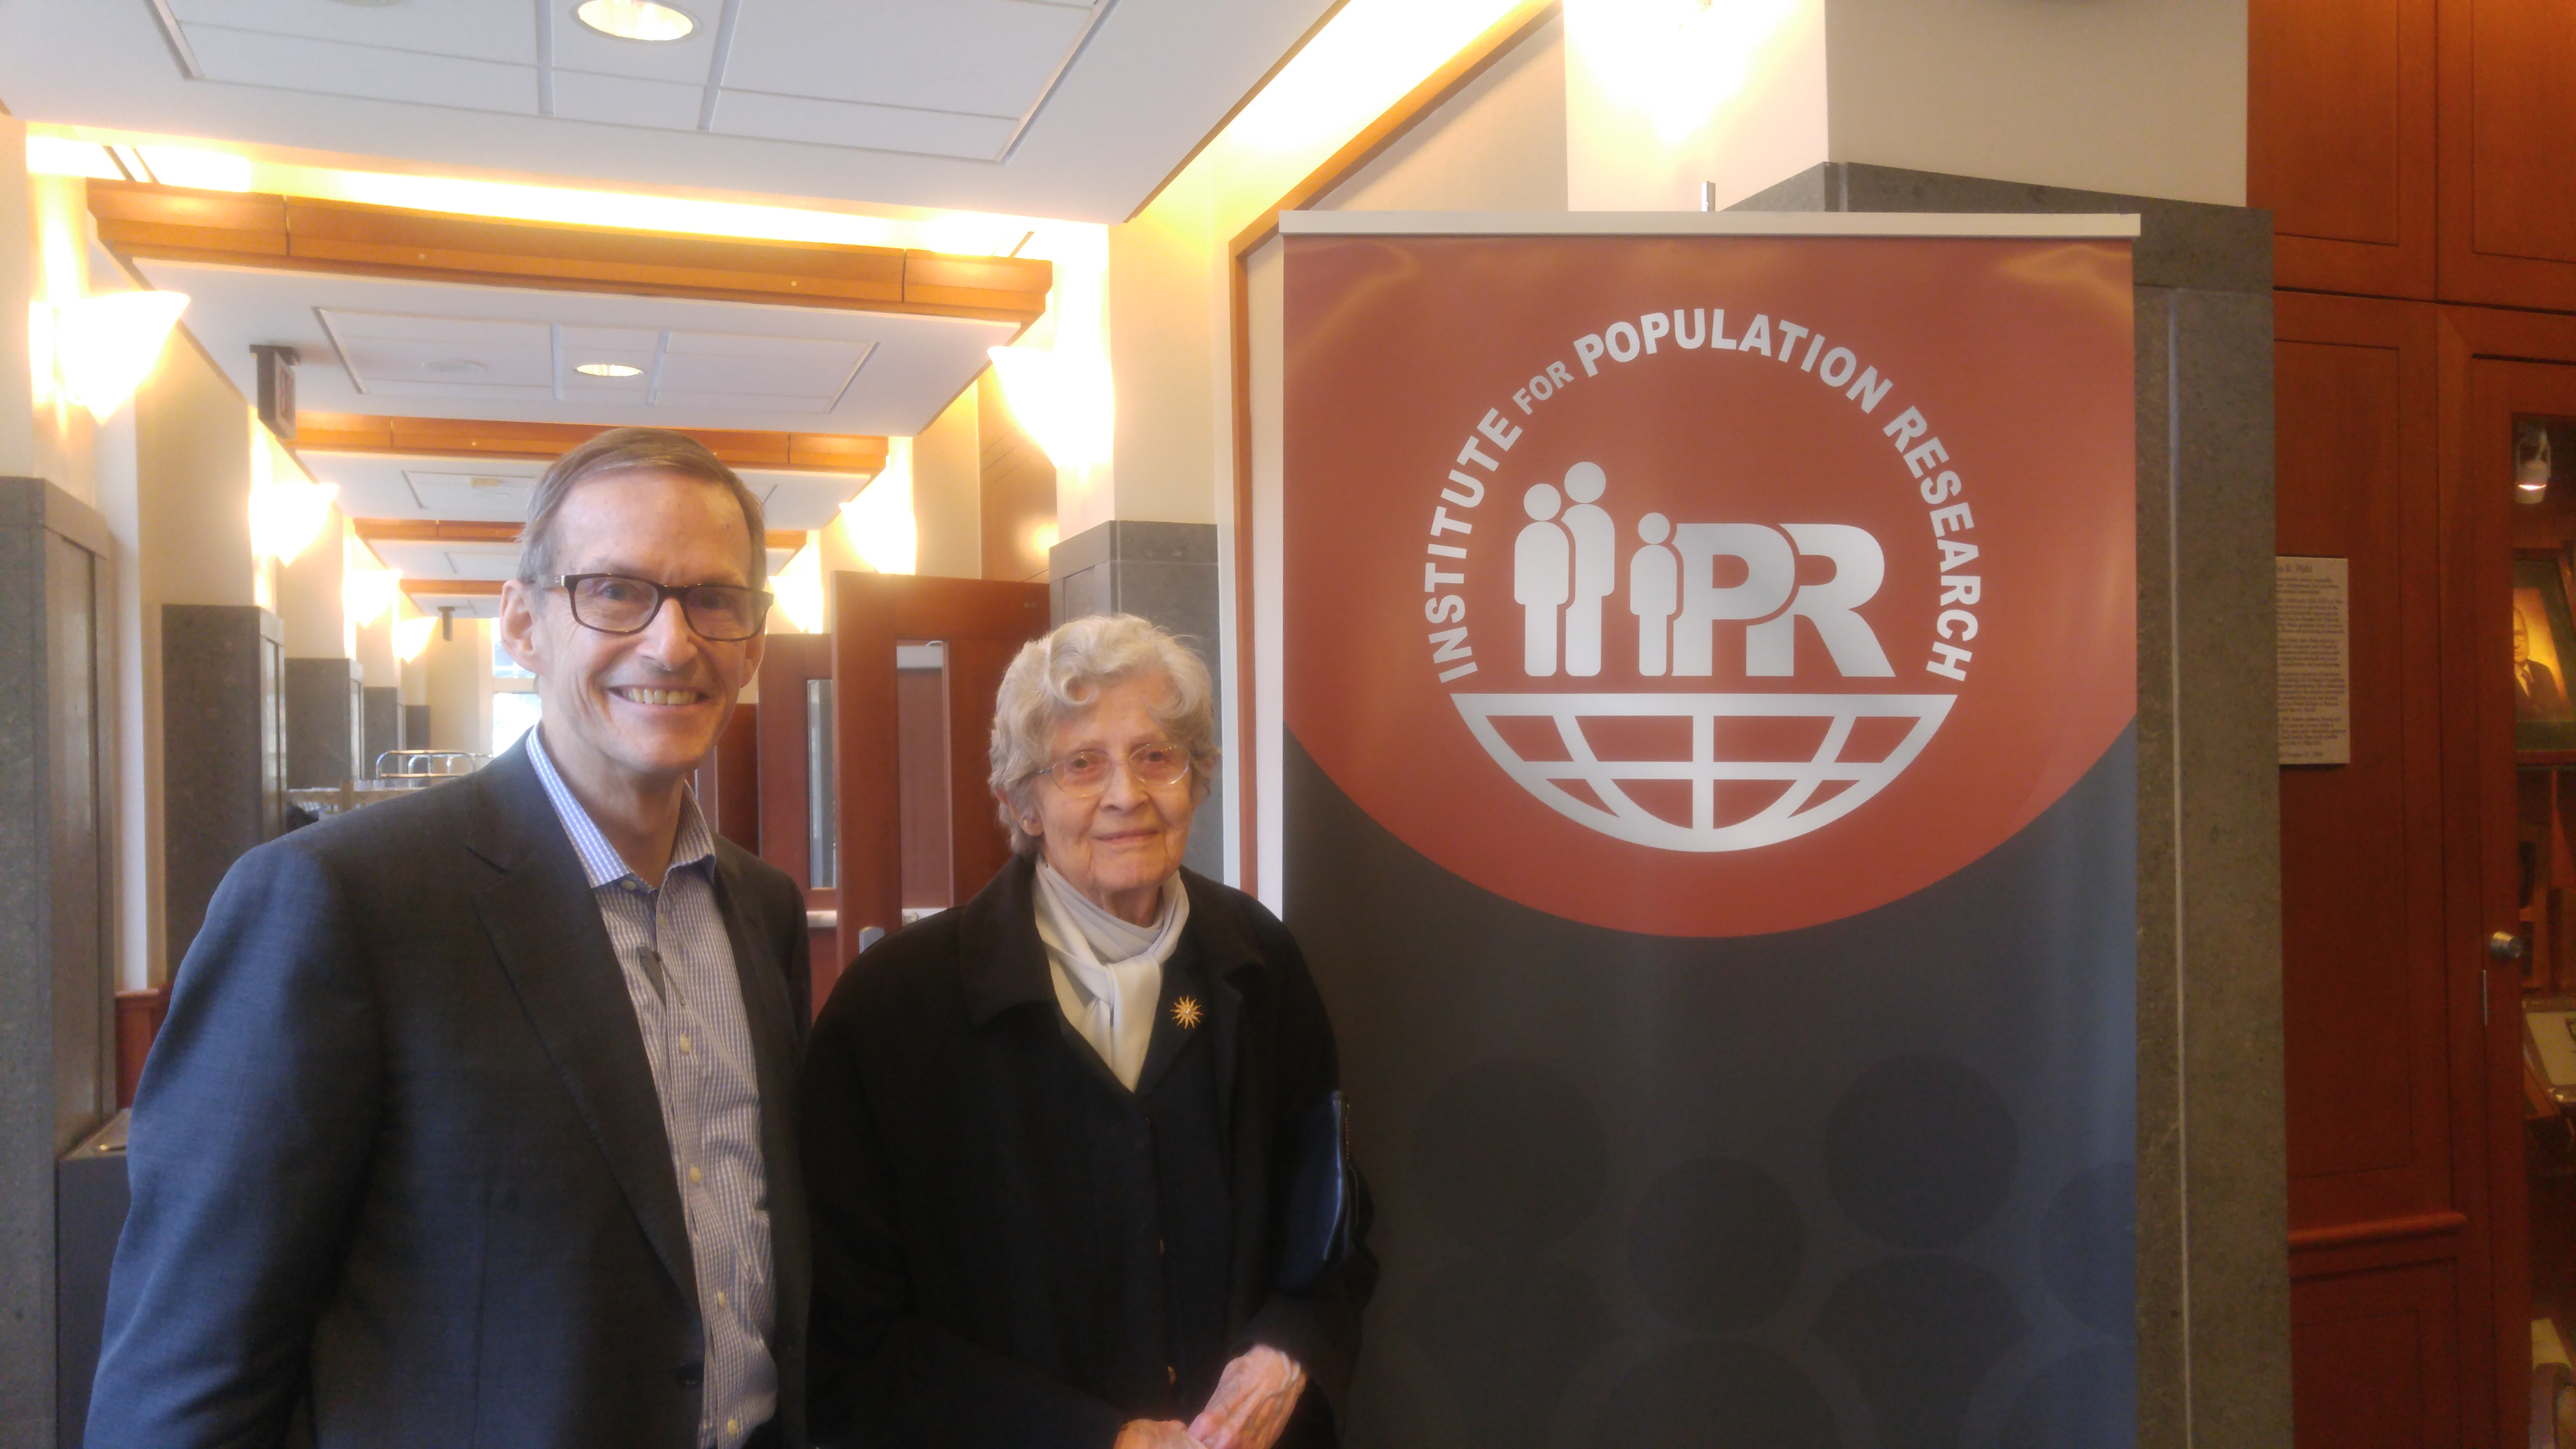 Photo of Drs. Joan Huber and Joe Potter